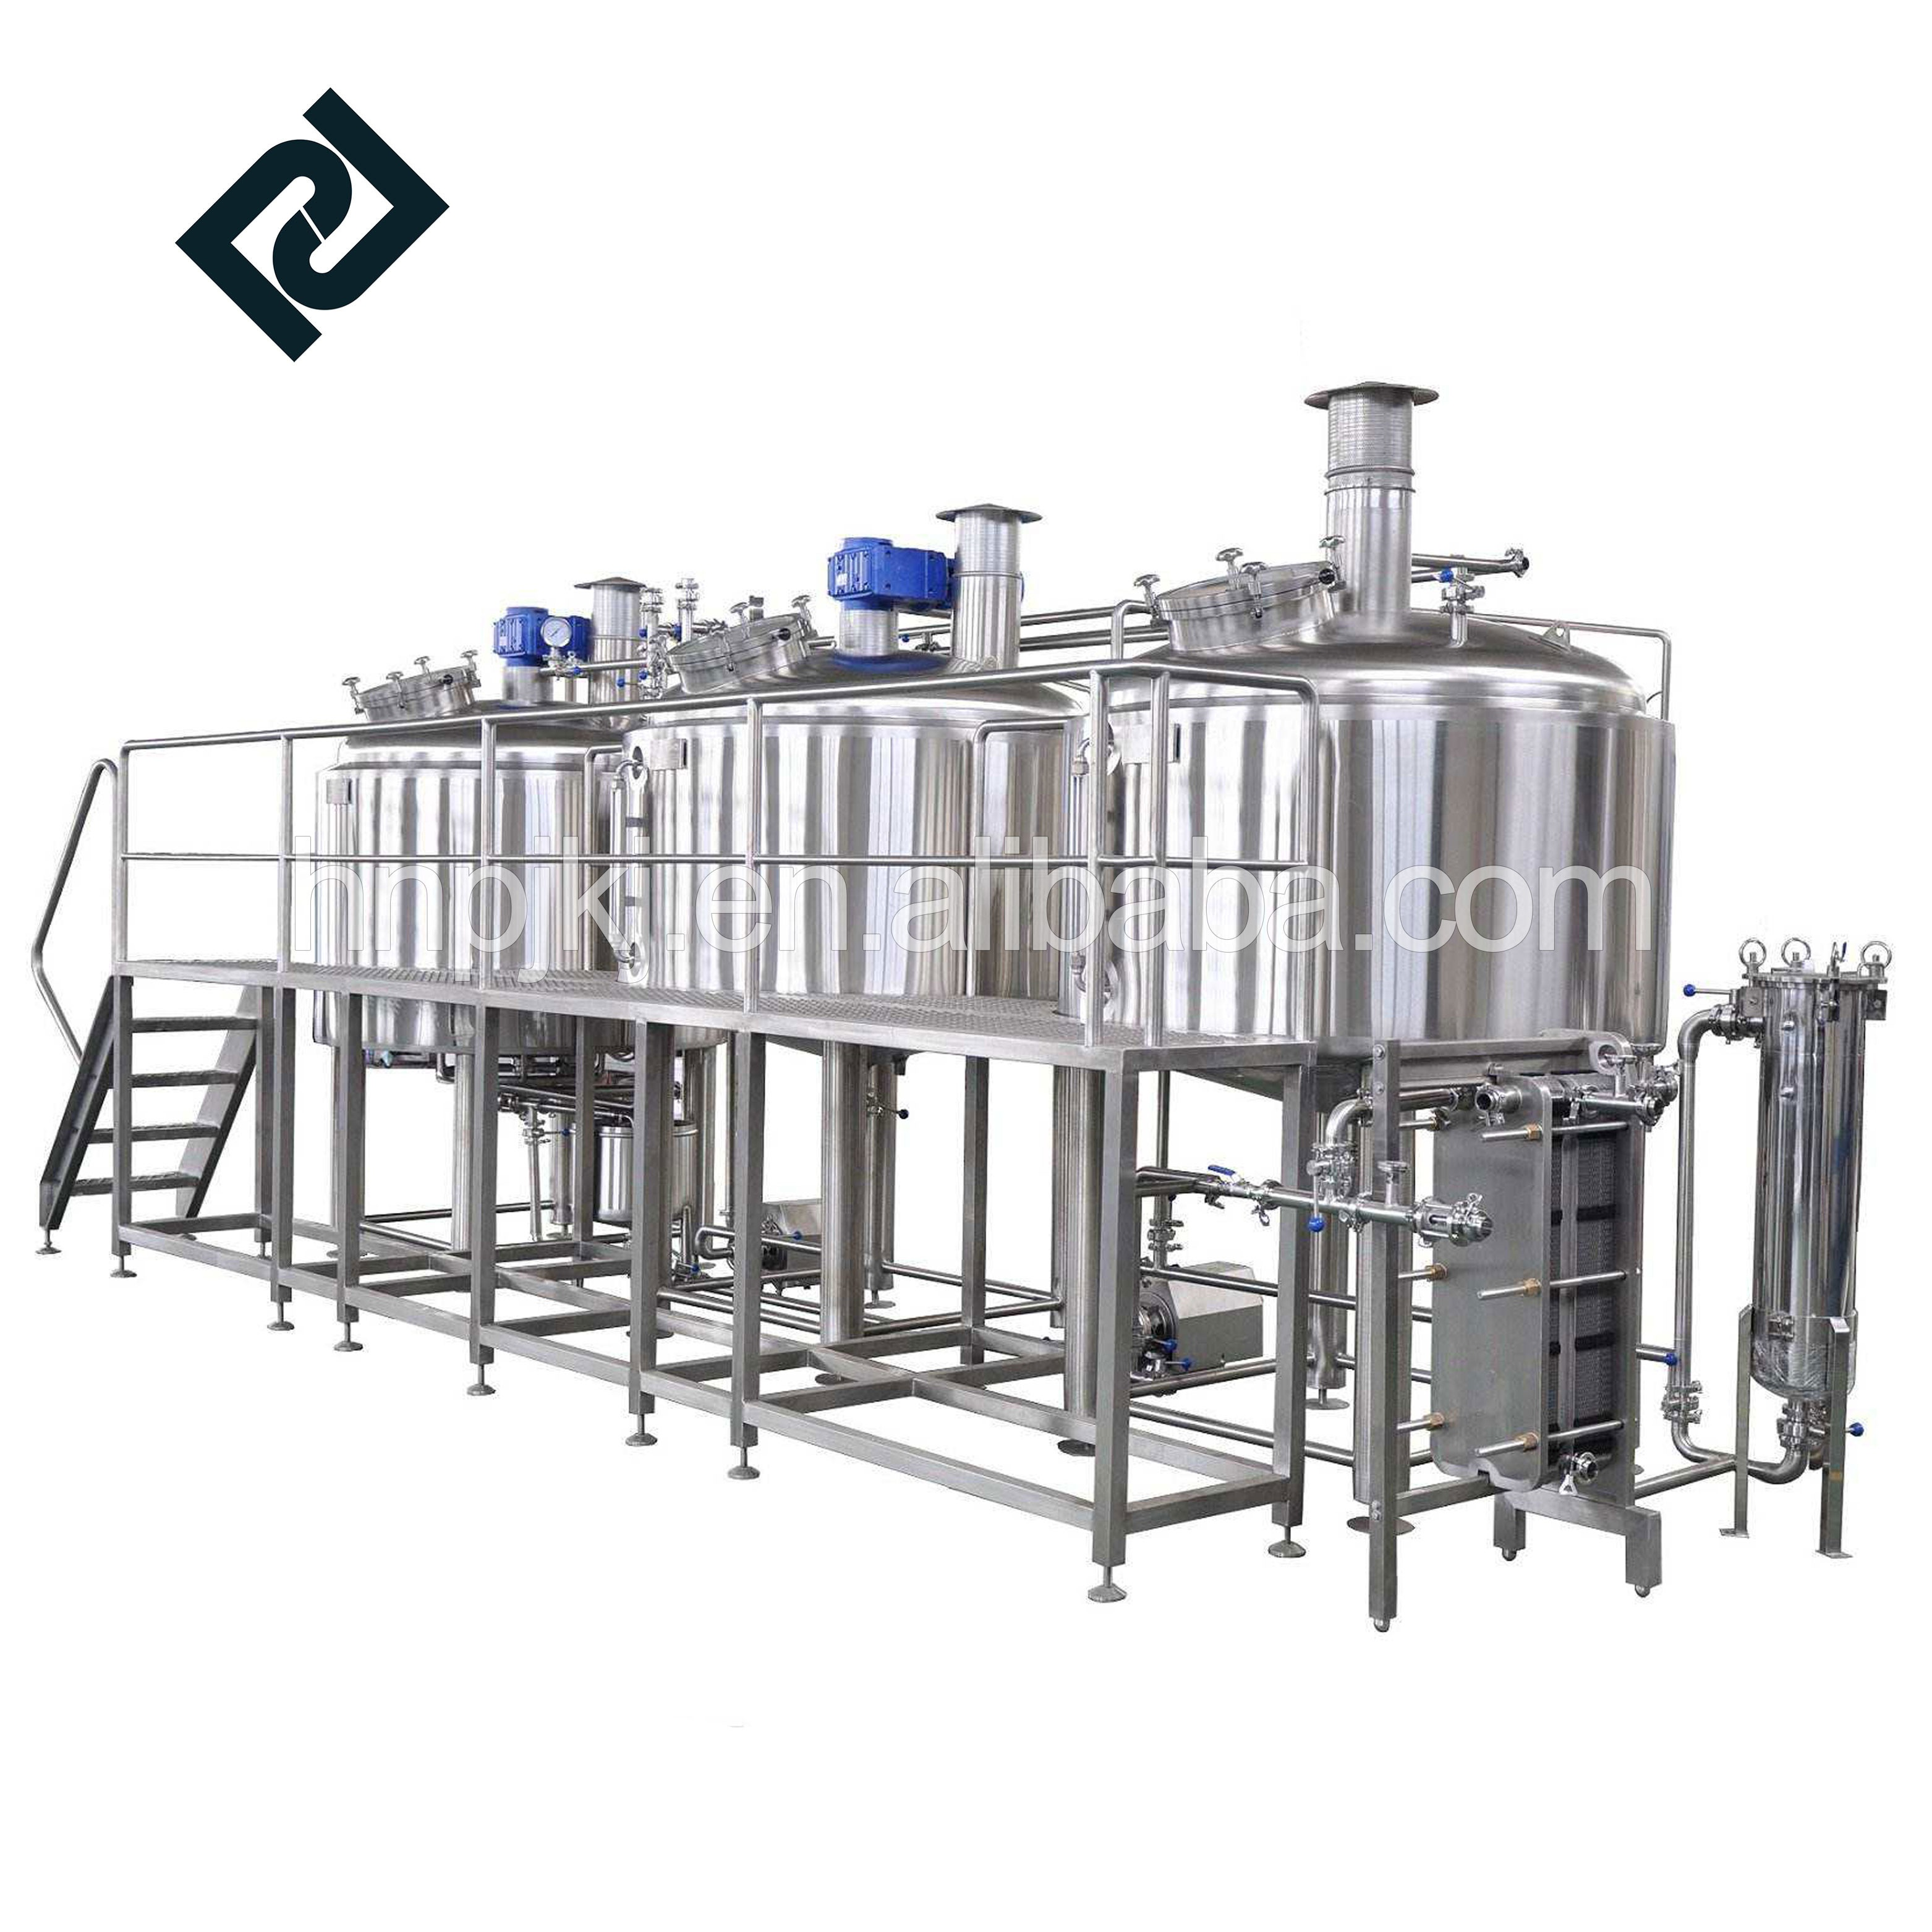 restaurant mini beer brewery brewing equipment craft brew making manufacturing fermenter brewing equipment